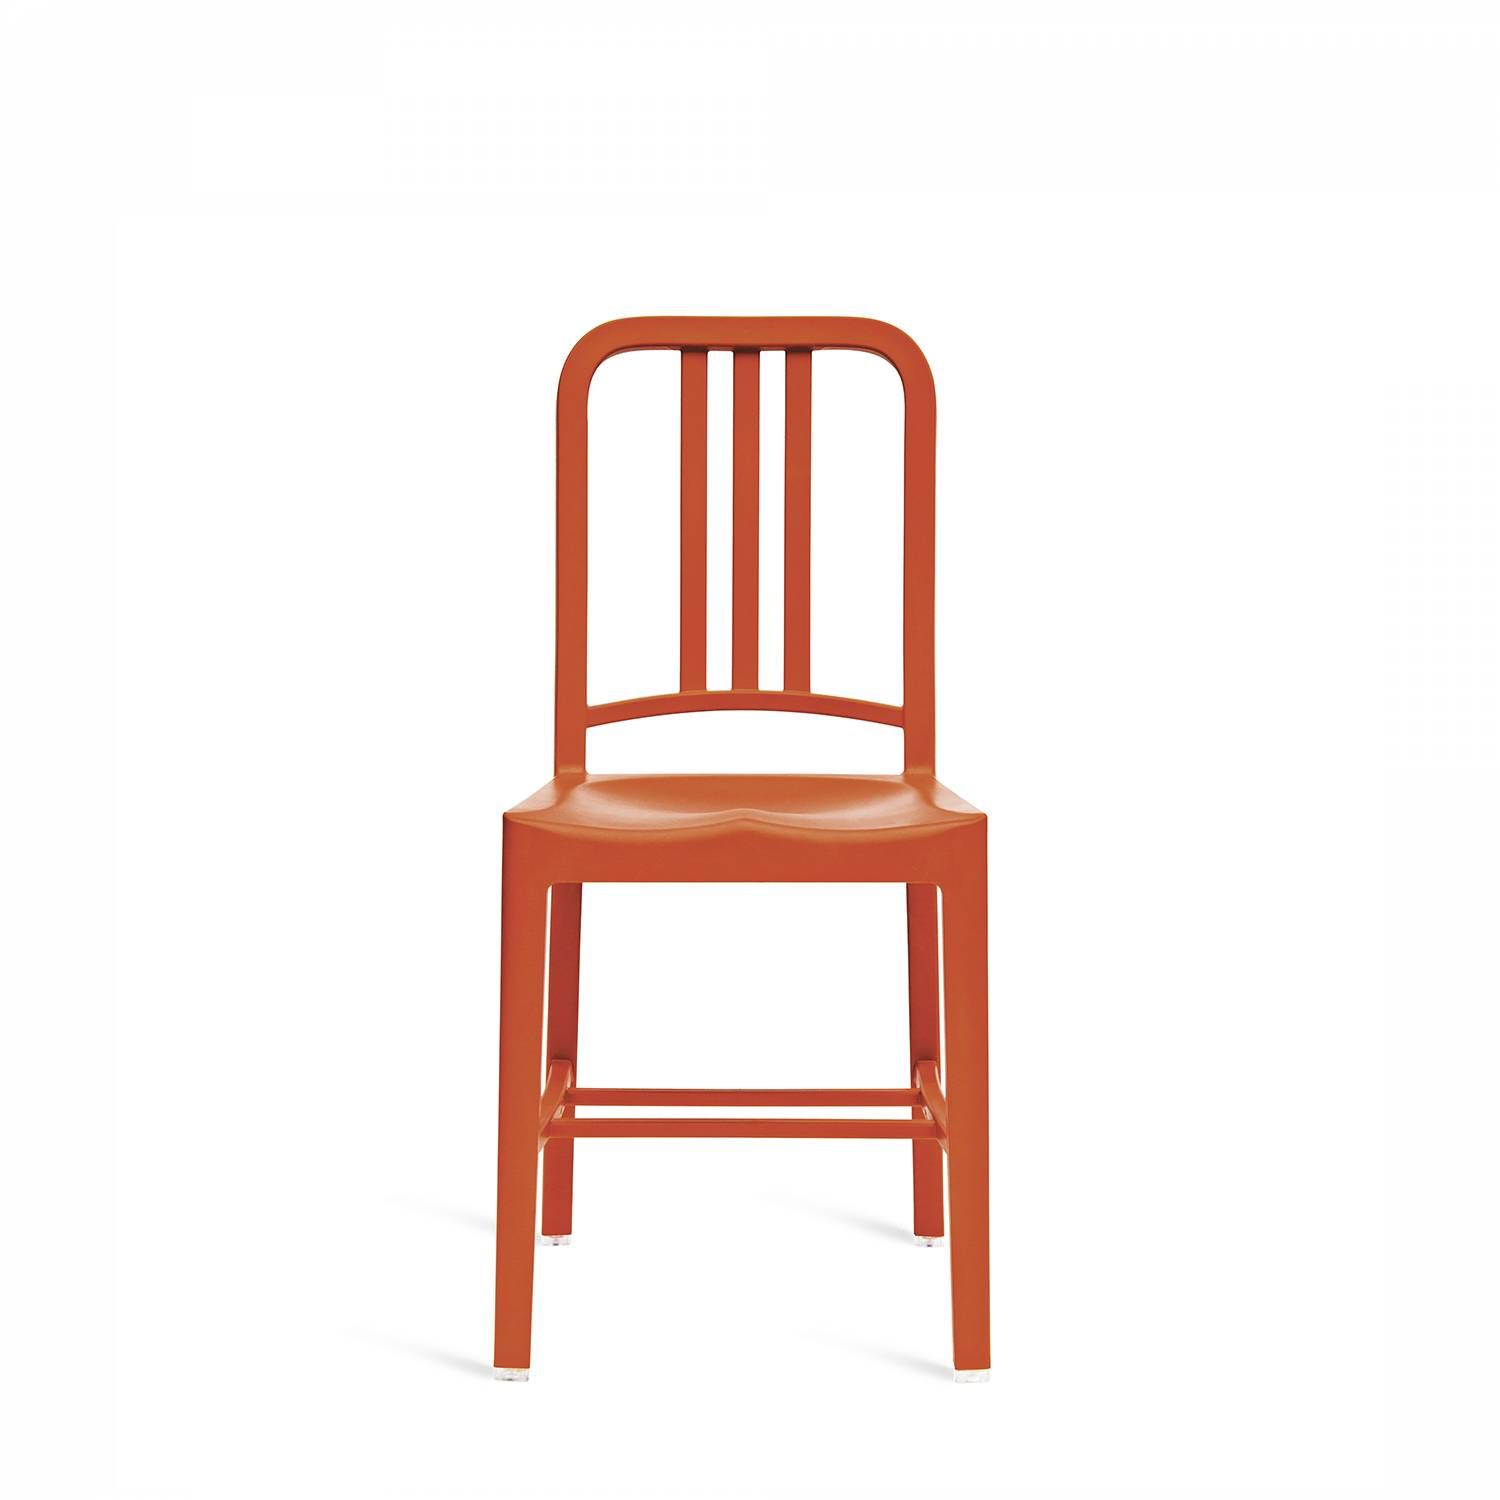 Emeco - 111 NAVY CHAIR of recycled PET